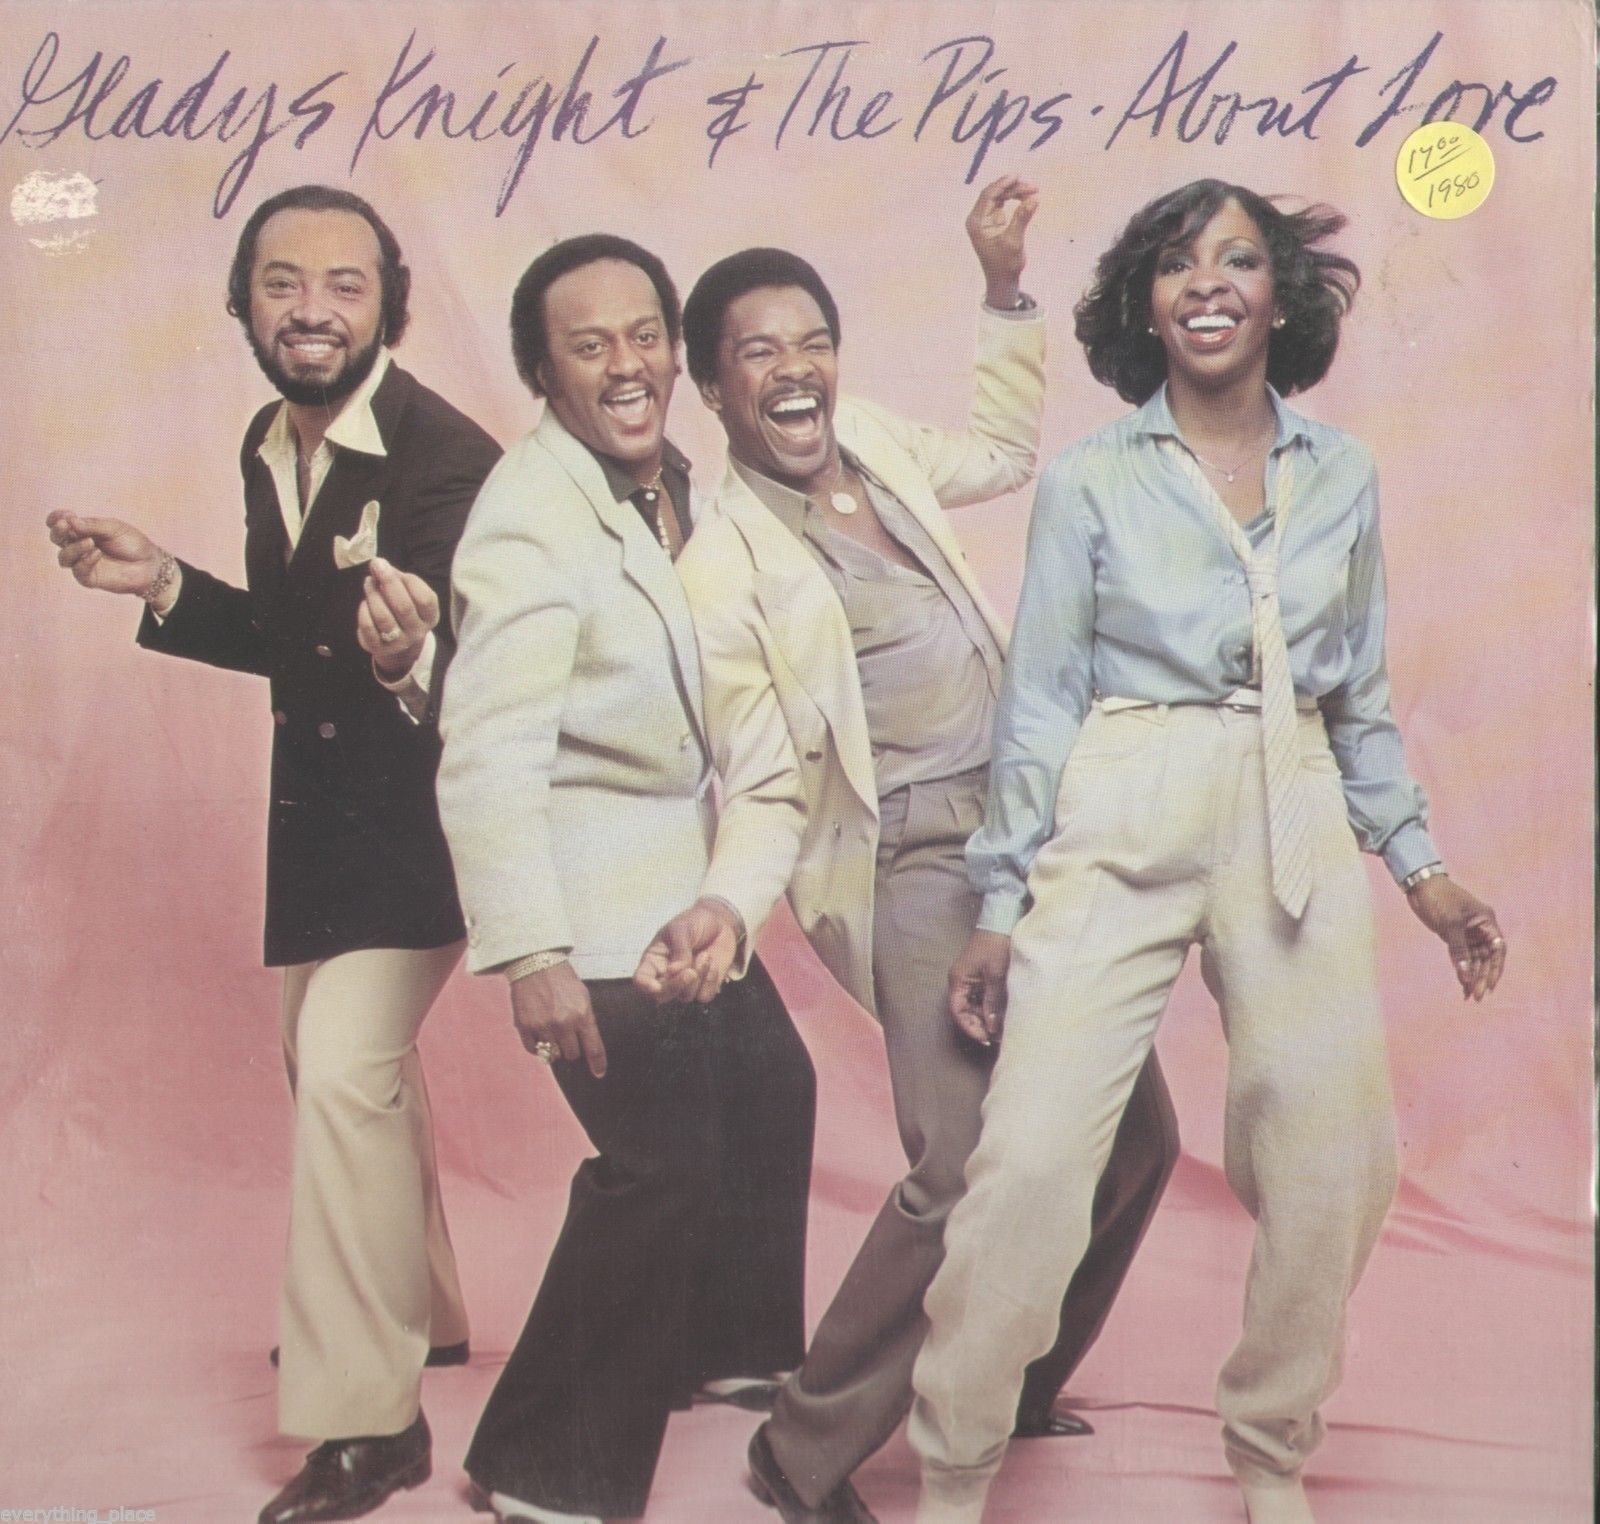 Gladys Knight The Pips About Love Vinyl Lp Record Album Gladys Knight Rhythm And Blues Soul Singers